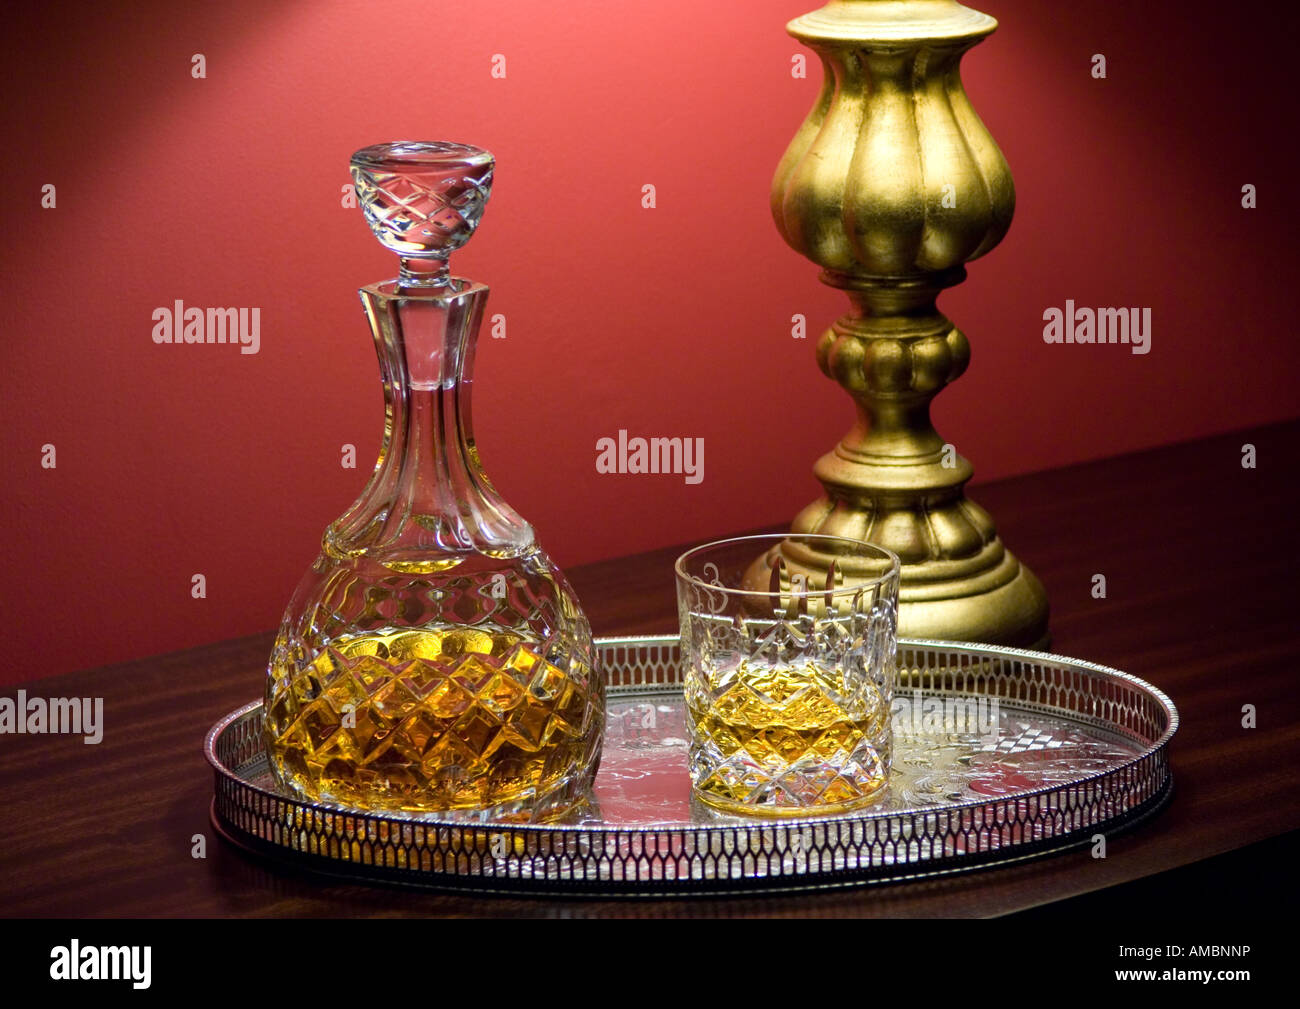 Whiskey, Decanter And Glass On A Silver Tray With Table Lamp